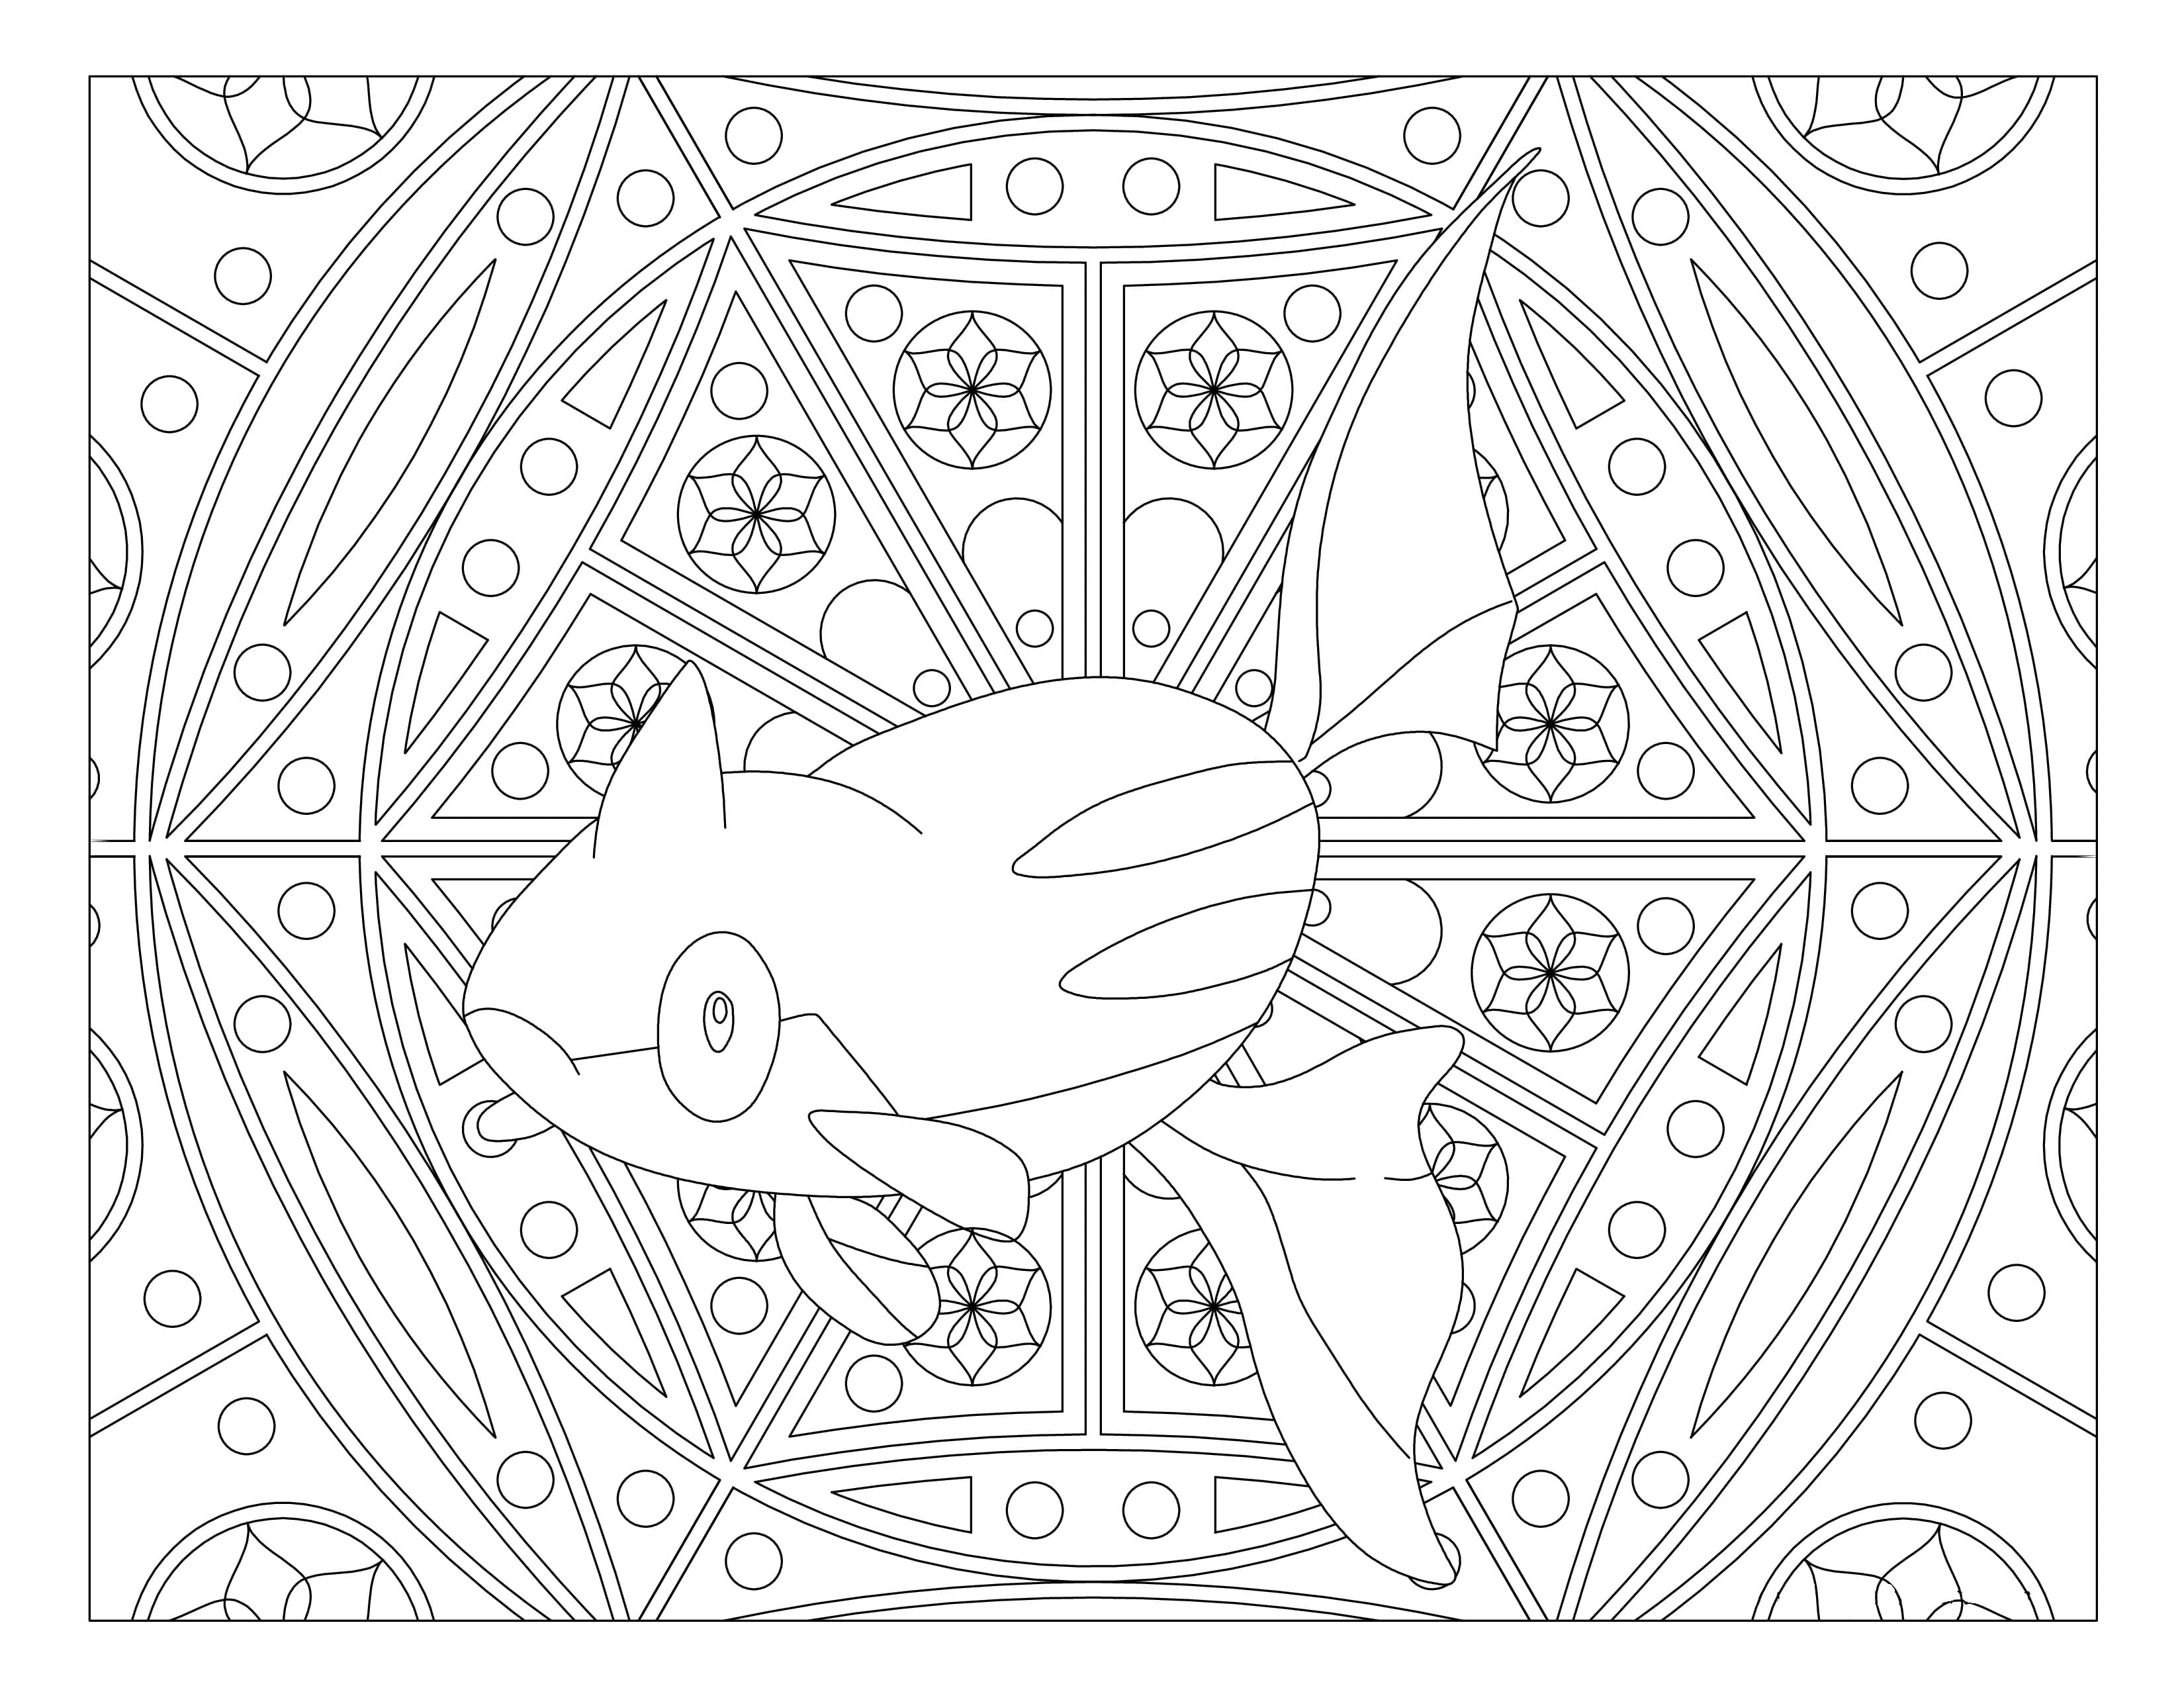 Coloring Pages Mandala Pokemon. Print for free, over 80 images